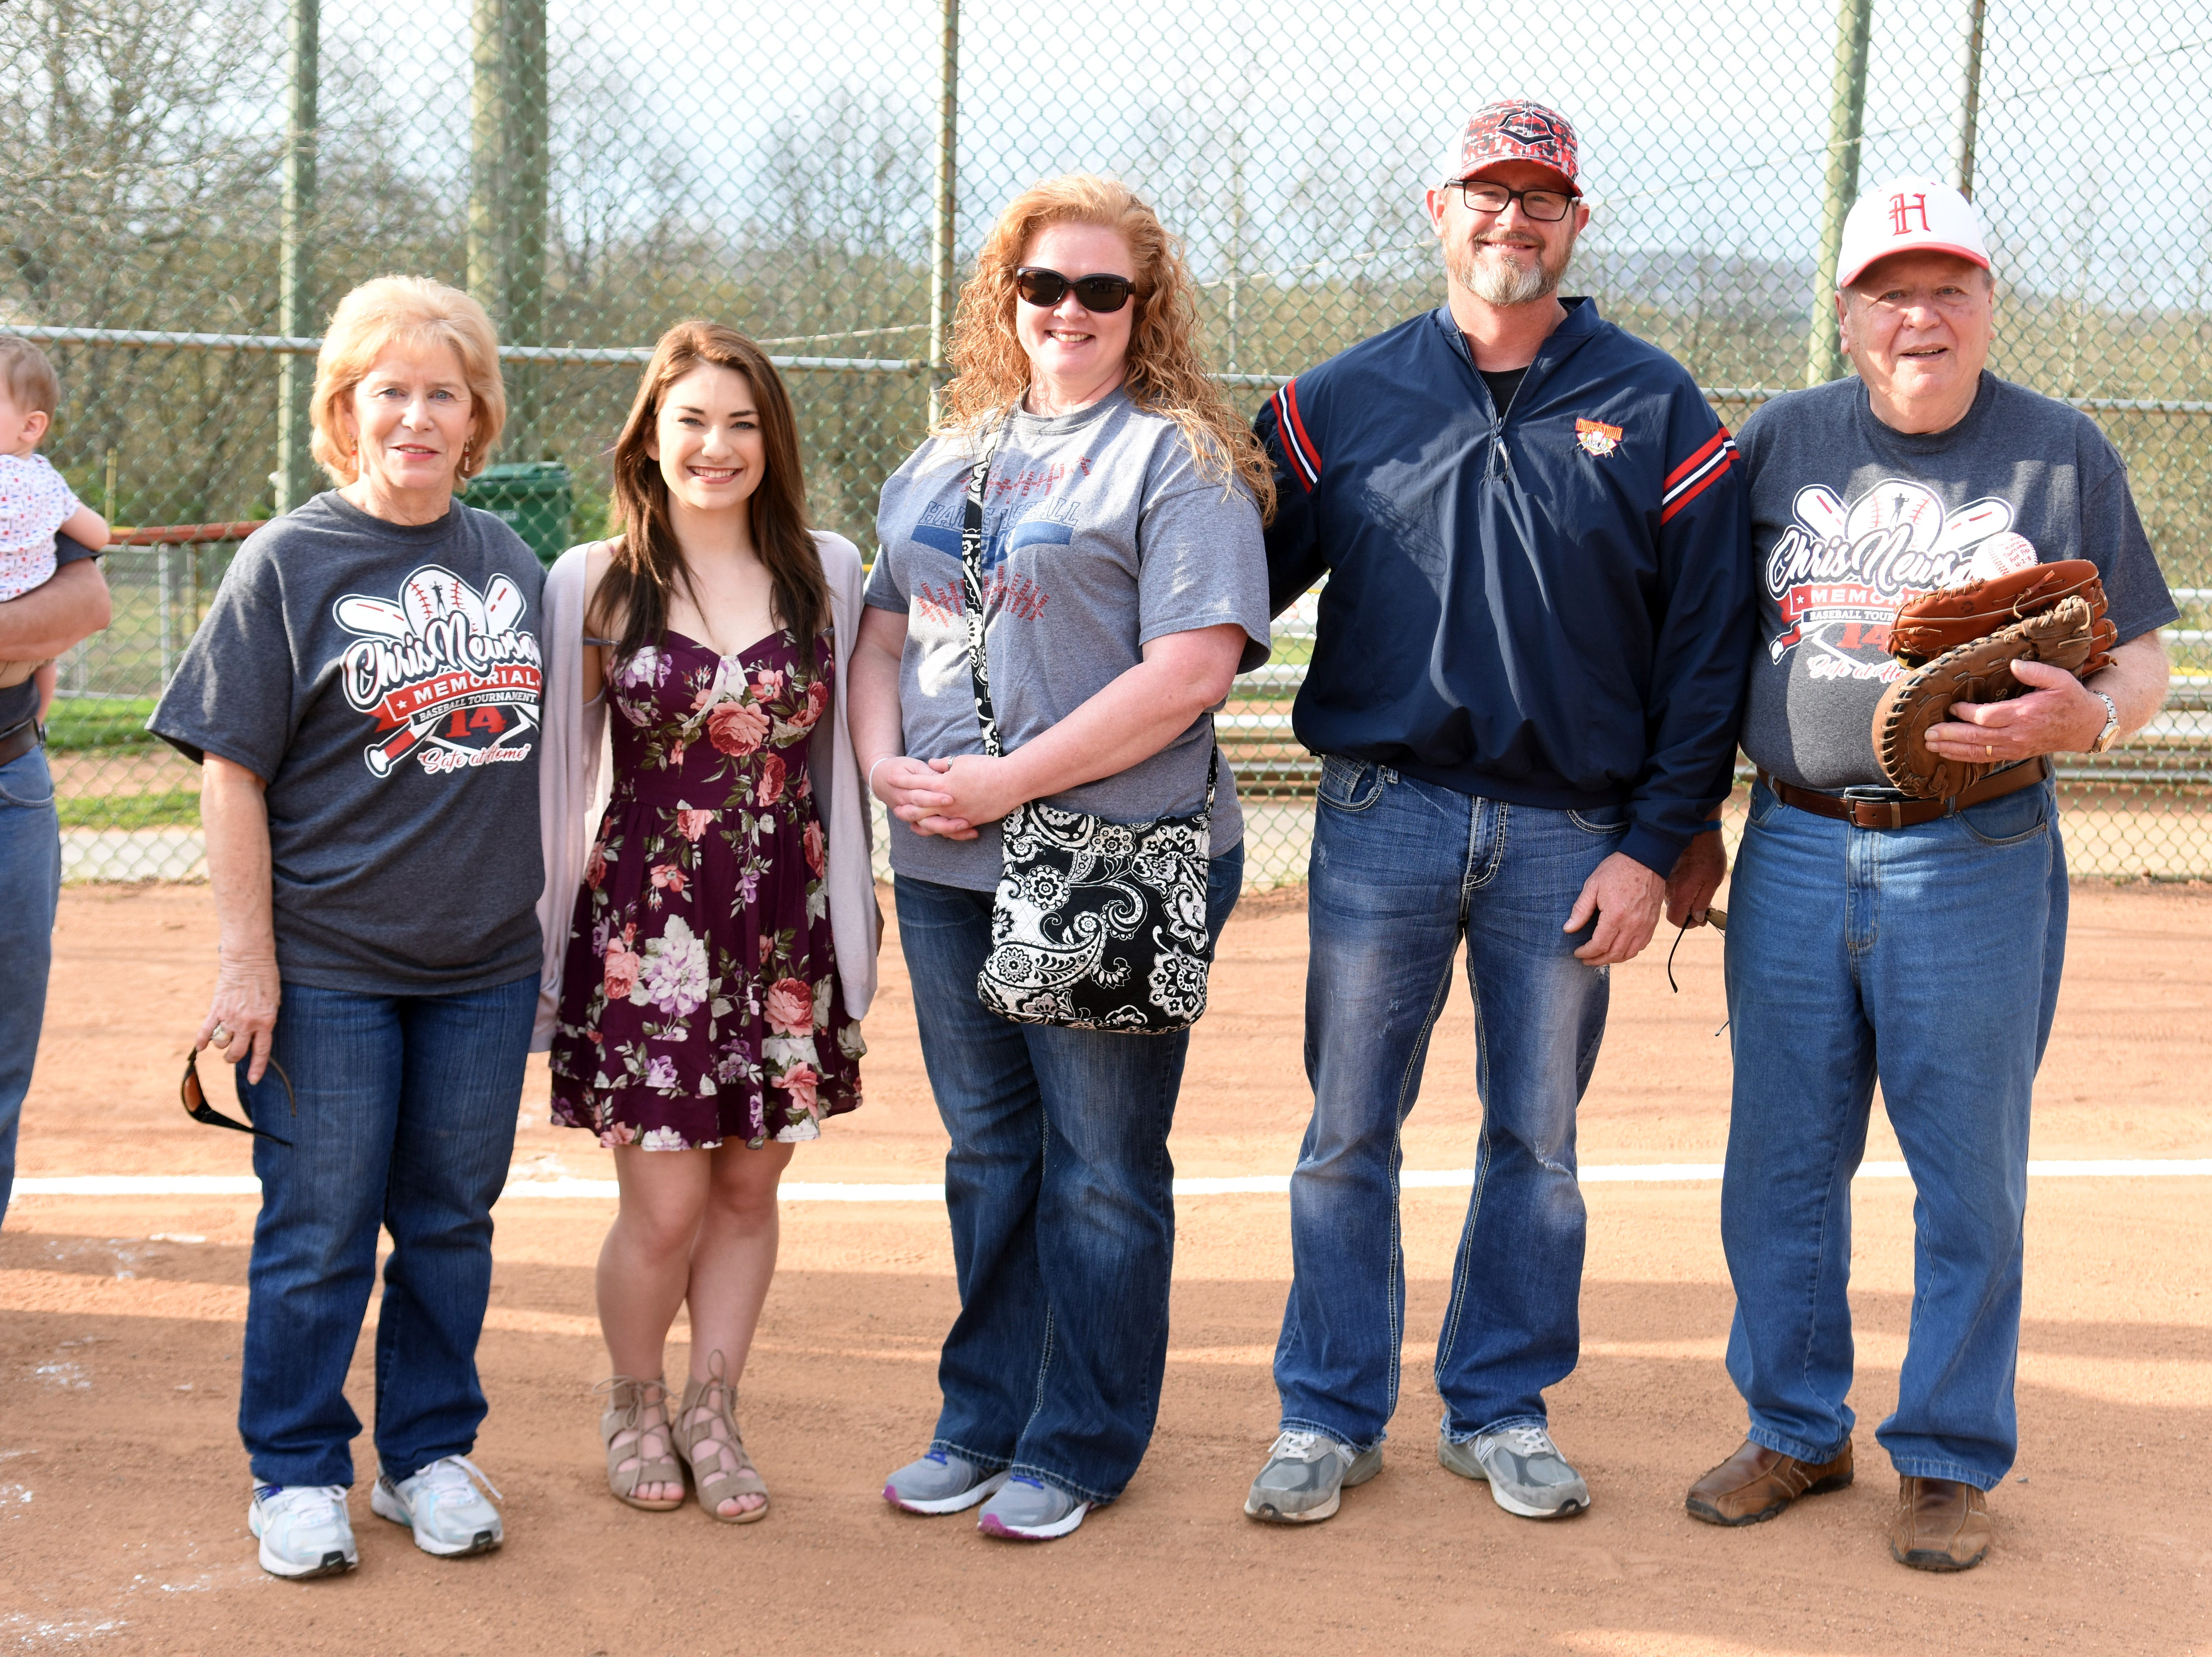 Mary and Hugh Newsom presented scholarships to Brianna Yanniello and Enic Brock at the 2018 Chris Newsom Memorial Tournament. Enic's parents accepted his award as he was playing baseball for the Halls Red Devils during the opening of the  tournament.